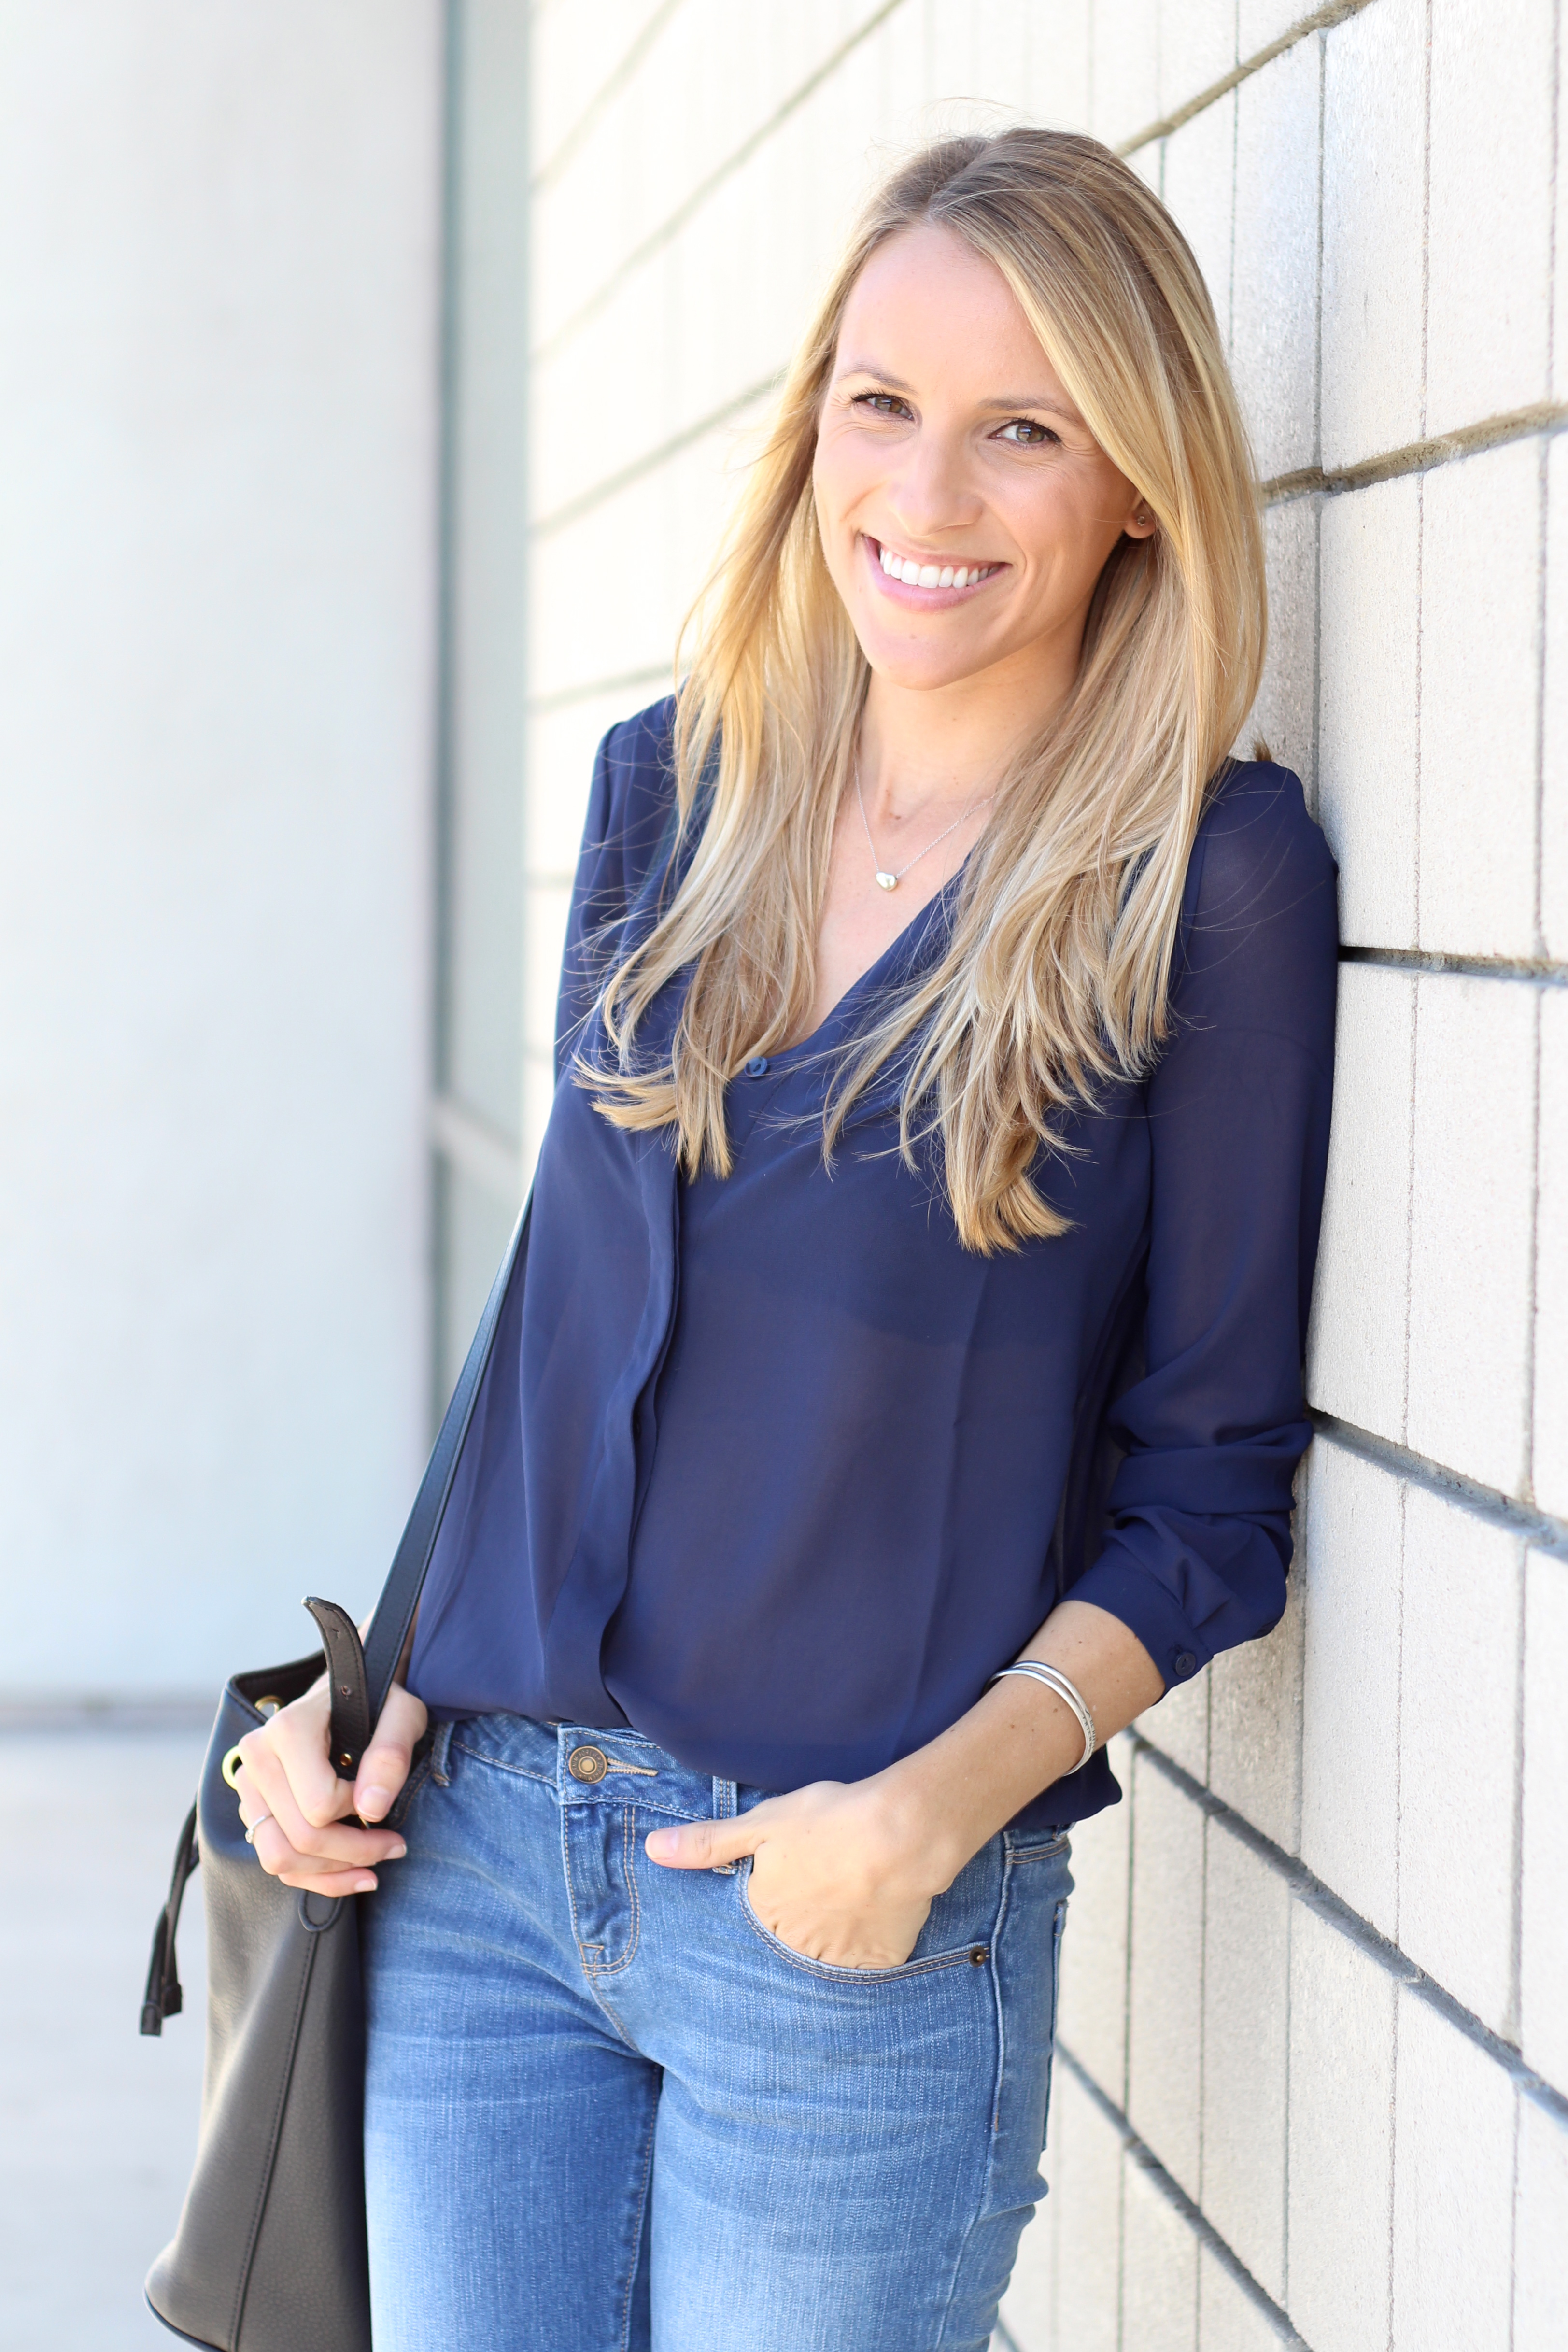 Classic Button-Down Blouse I Adorned With Love